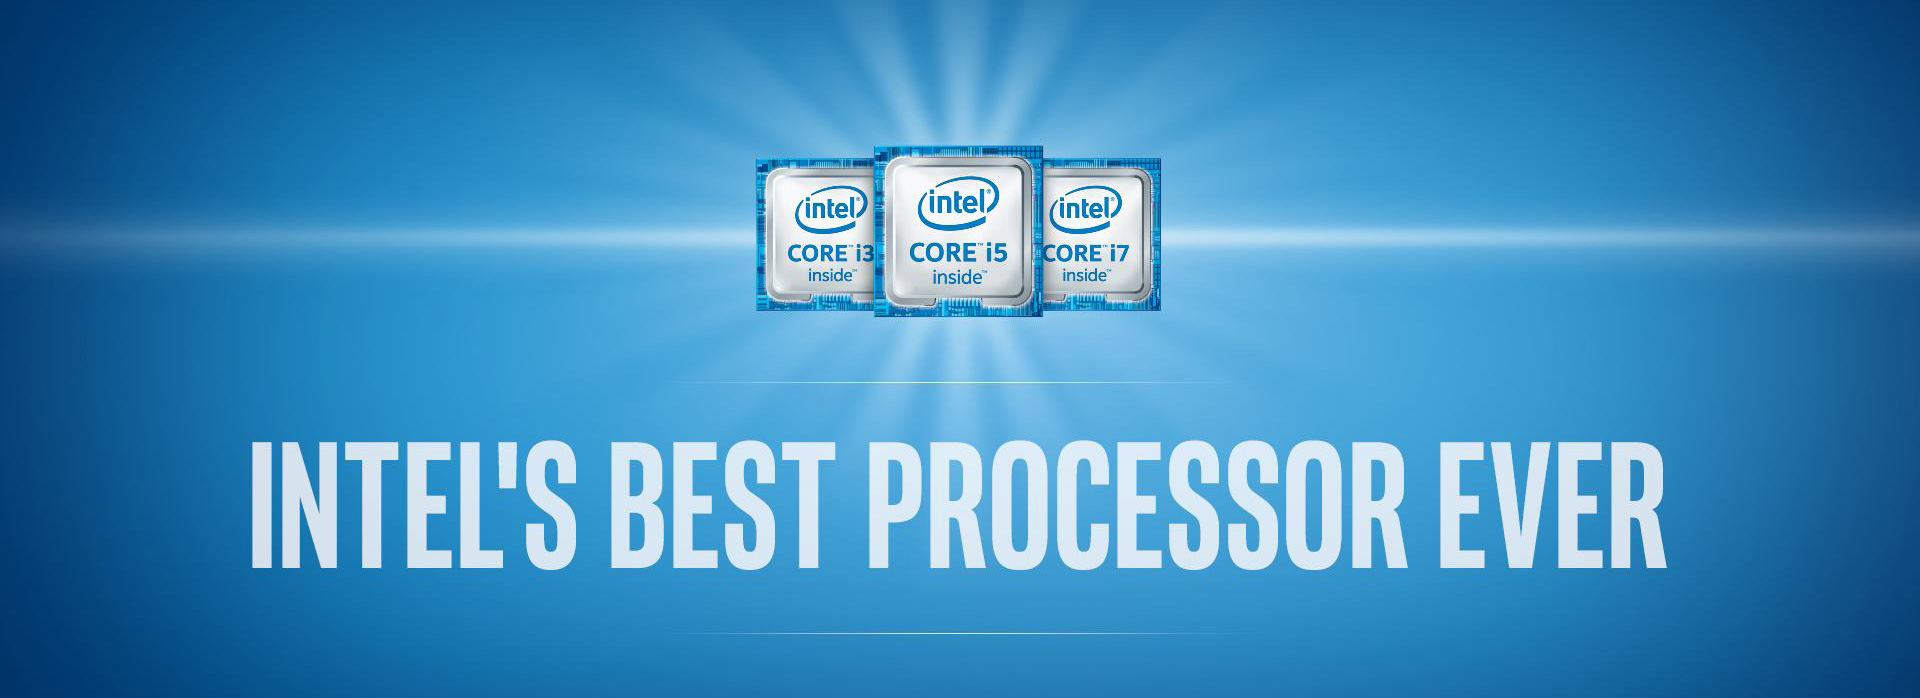 Intel Core i3 i5 and i7, their best ever processor